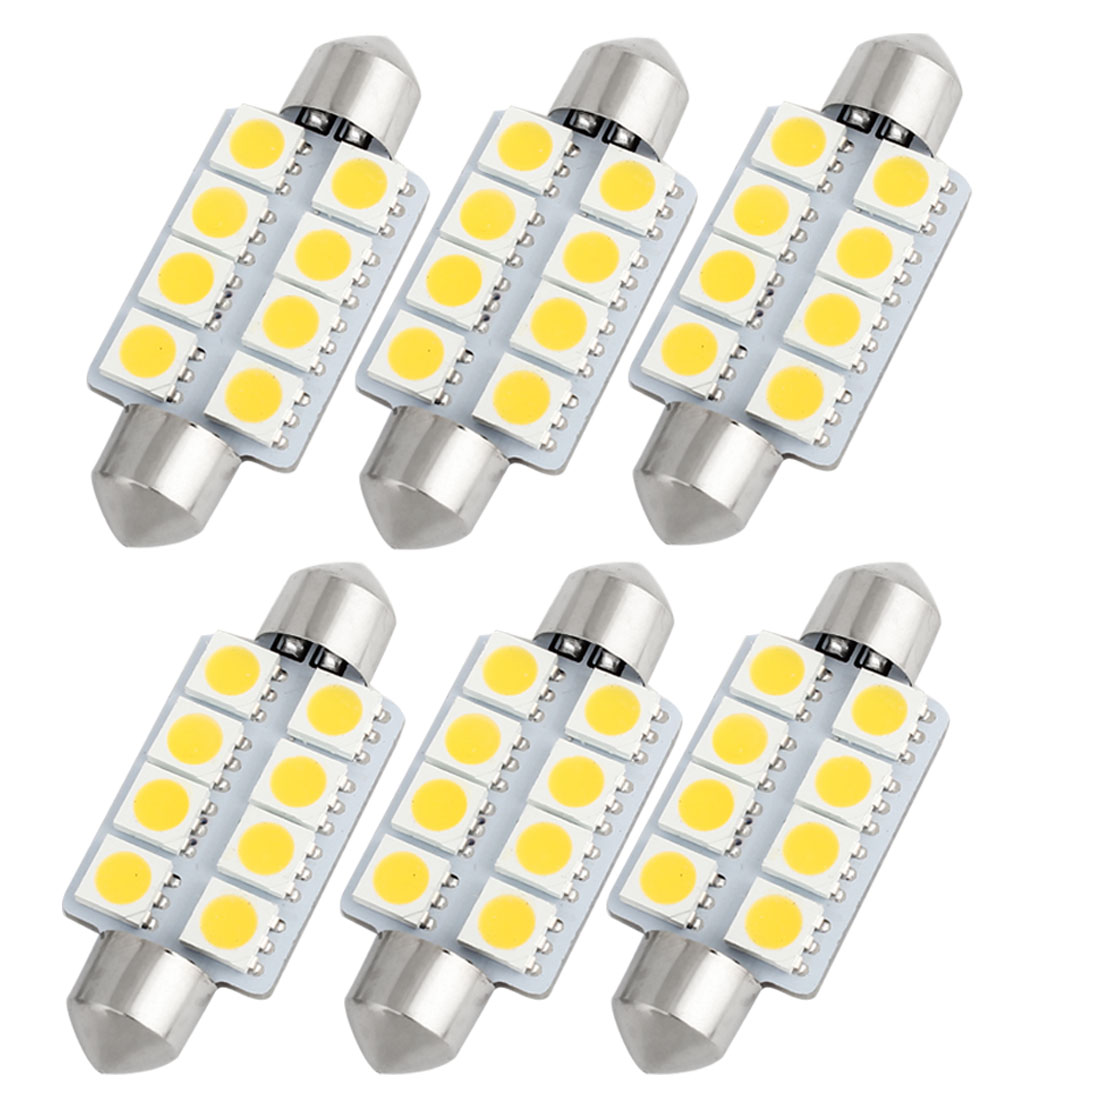 6Pcs 41mm 8-SMD 5050 LED Warm White DC 12V Festoon Dome Light 578 6429 Internal